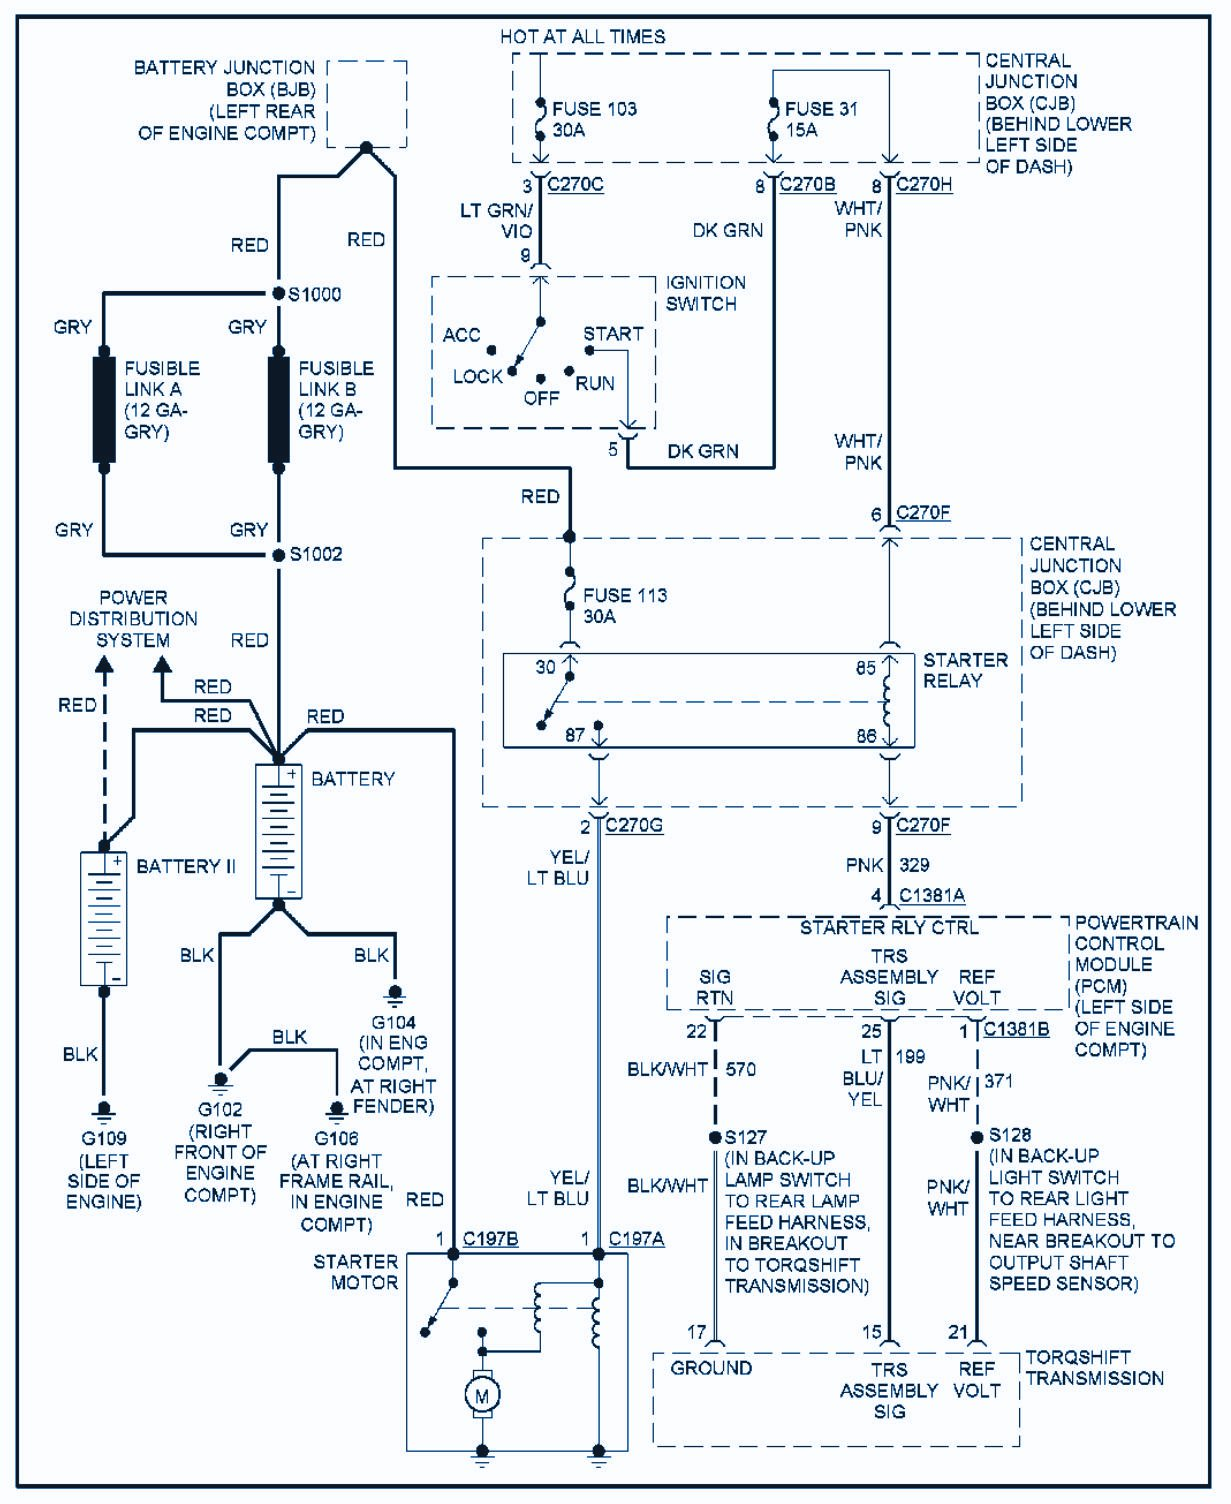 diagram] 1977 ford wiring diagram full version hd quality wiring diagram -  mindschematic.rapfrance.fr  mindschematic.rapfrance.fr